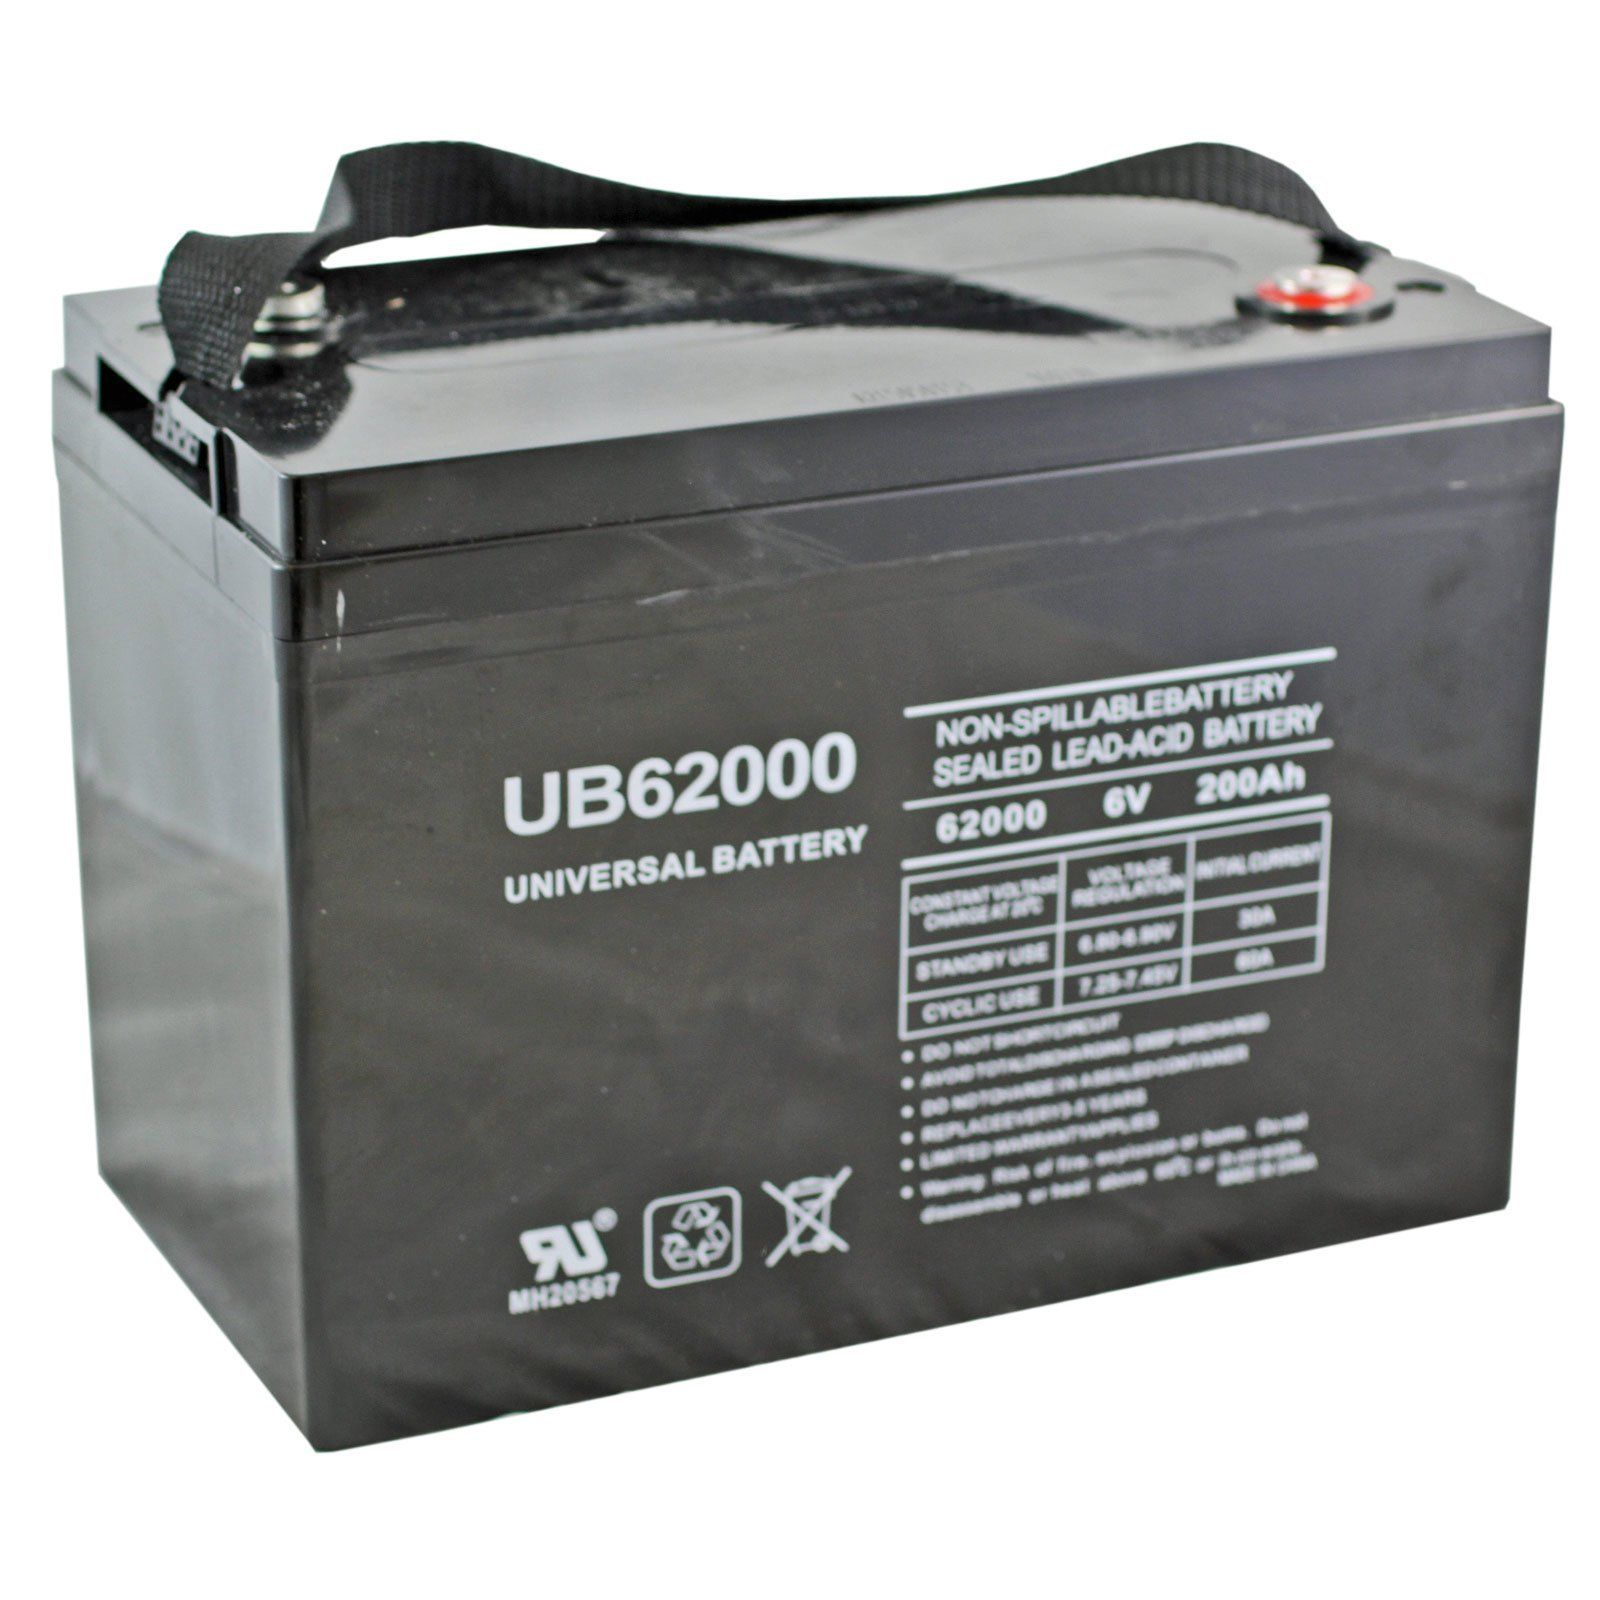 Replacement 6V 200Ah Battery for M83CHP06V27 RA6-200, UB6200, PS-62000 Pallet Jack Battery, Golf Cart Battery, Group 27